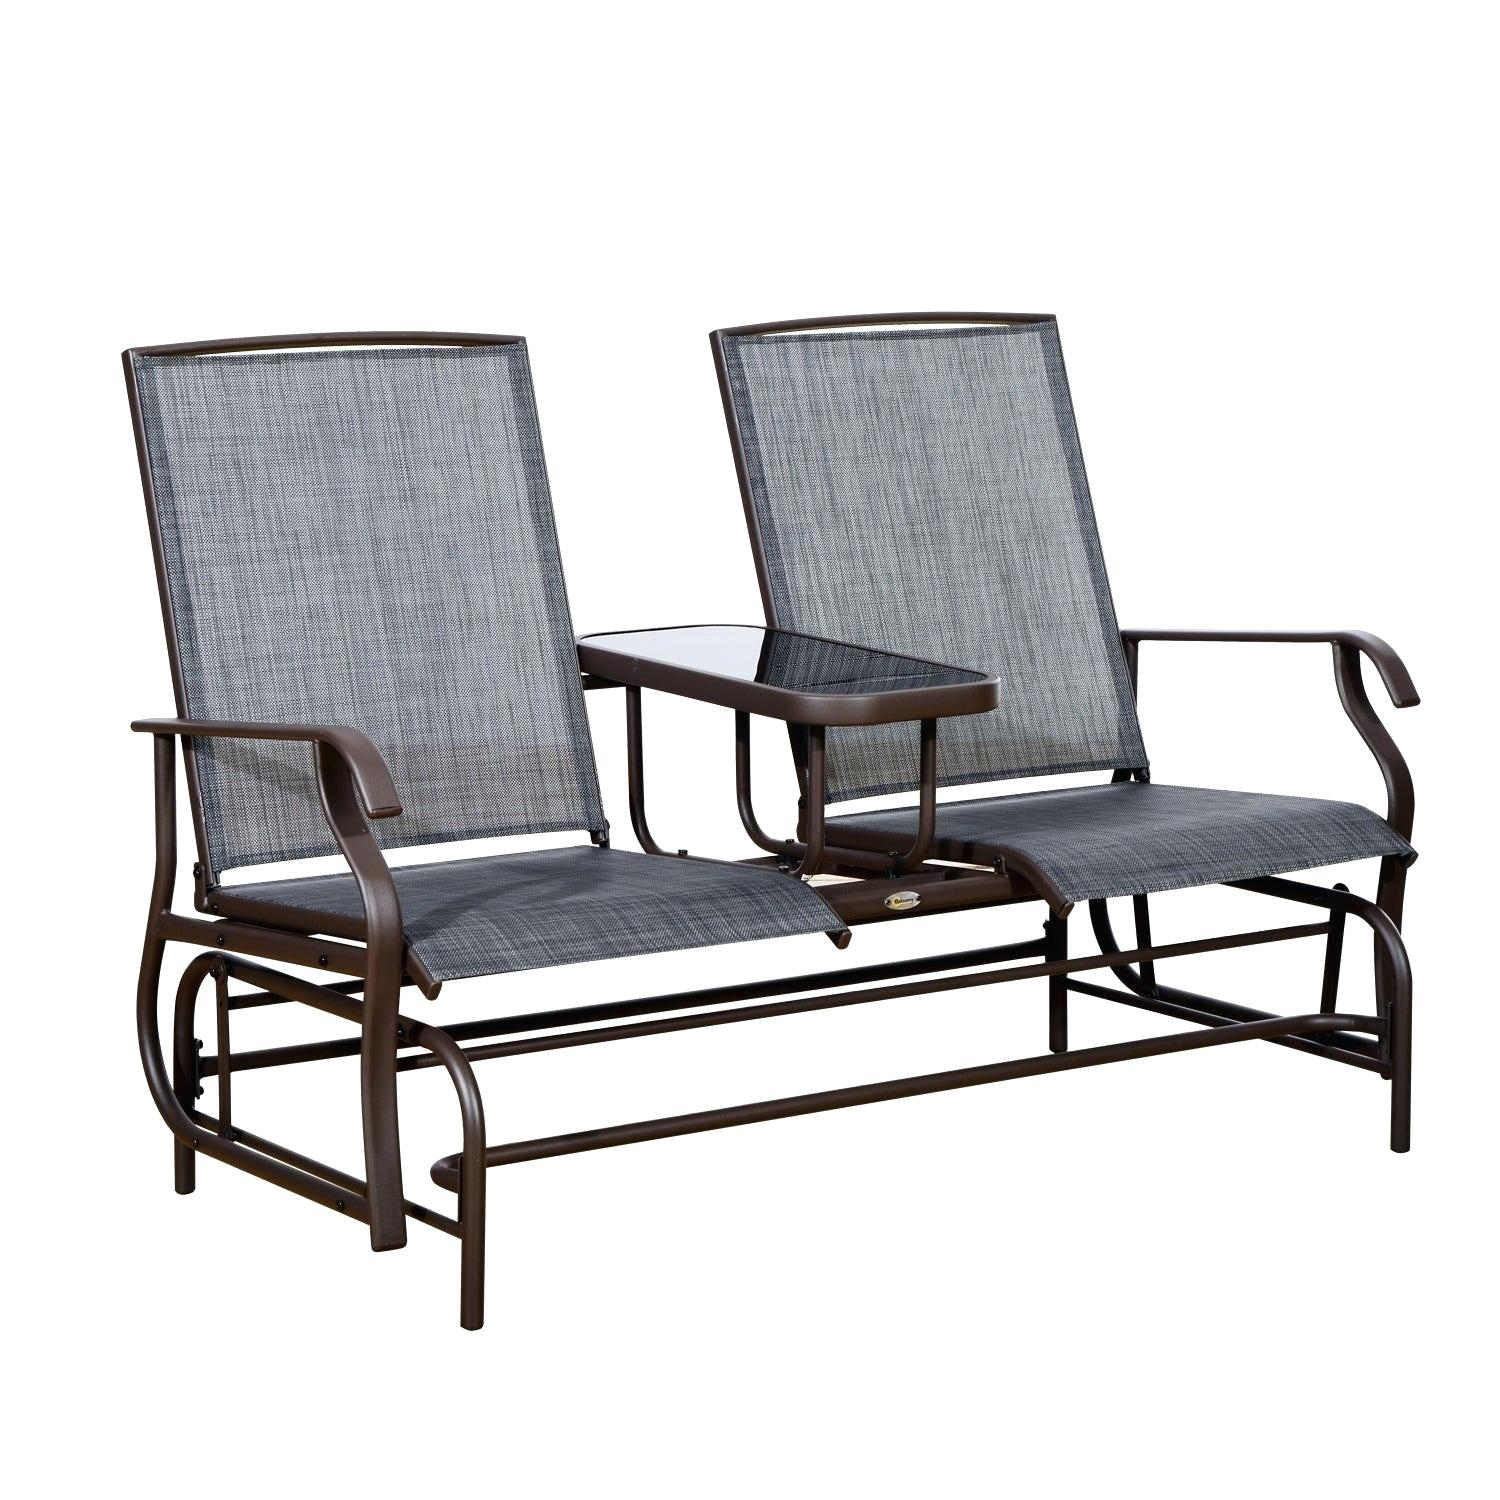 Brown Outdoor Furniture – Tacomexboston Throughout Aluminum Outdoor Double Glider Benches (View 7 of 25)